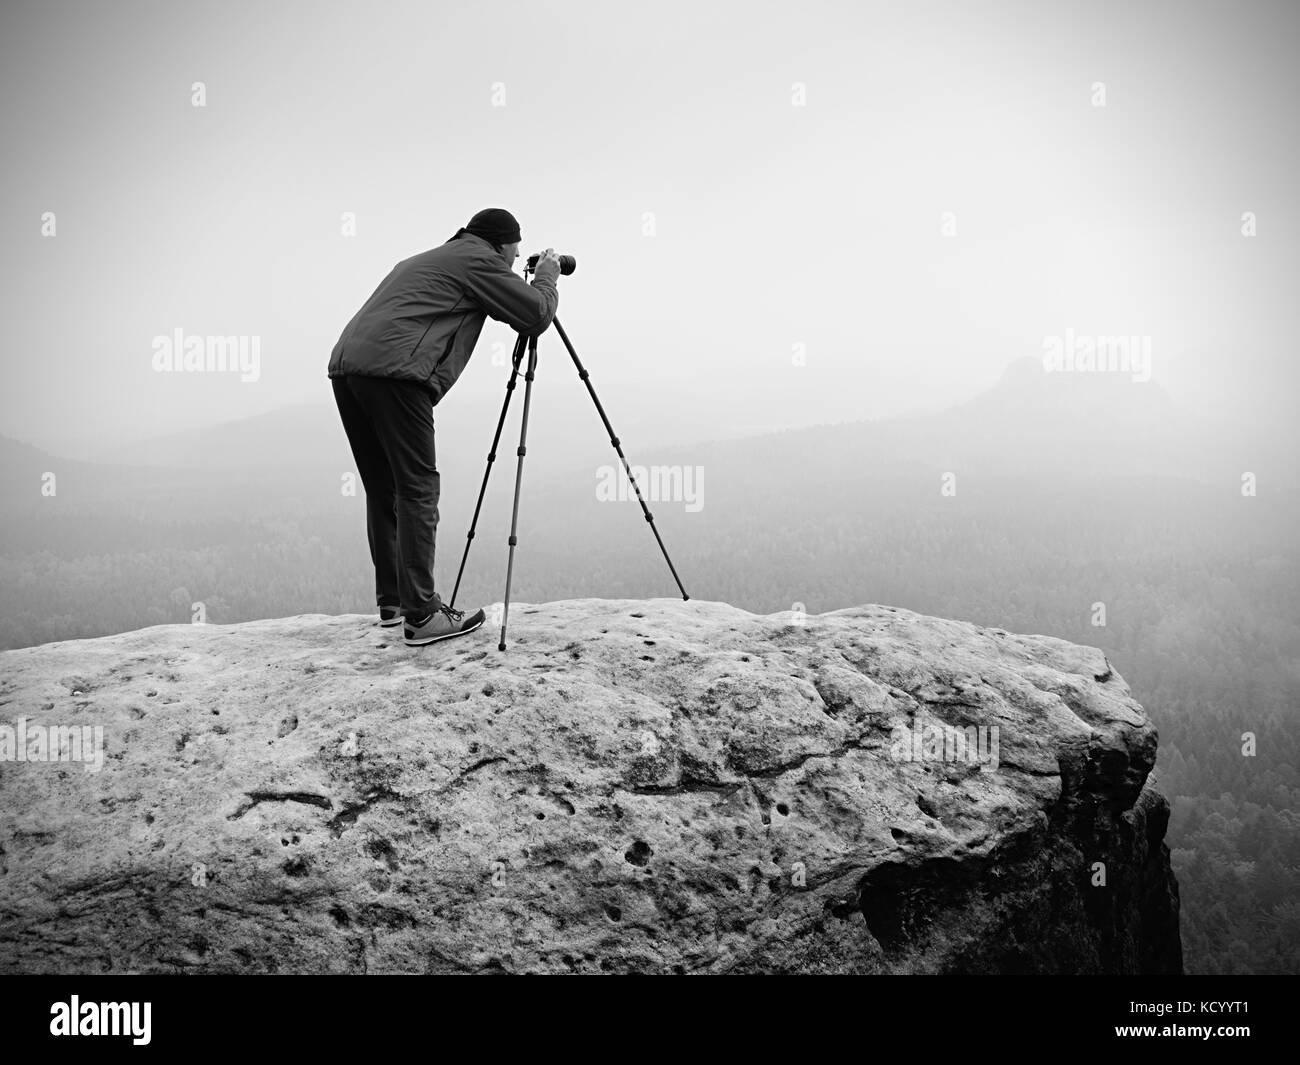 Wildlife photographer on mountain summit works. Man like to travel and photography, taking pictures of moments during - Stock Image